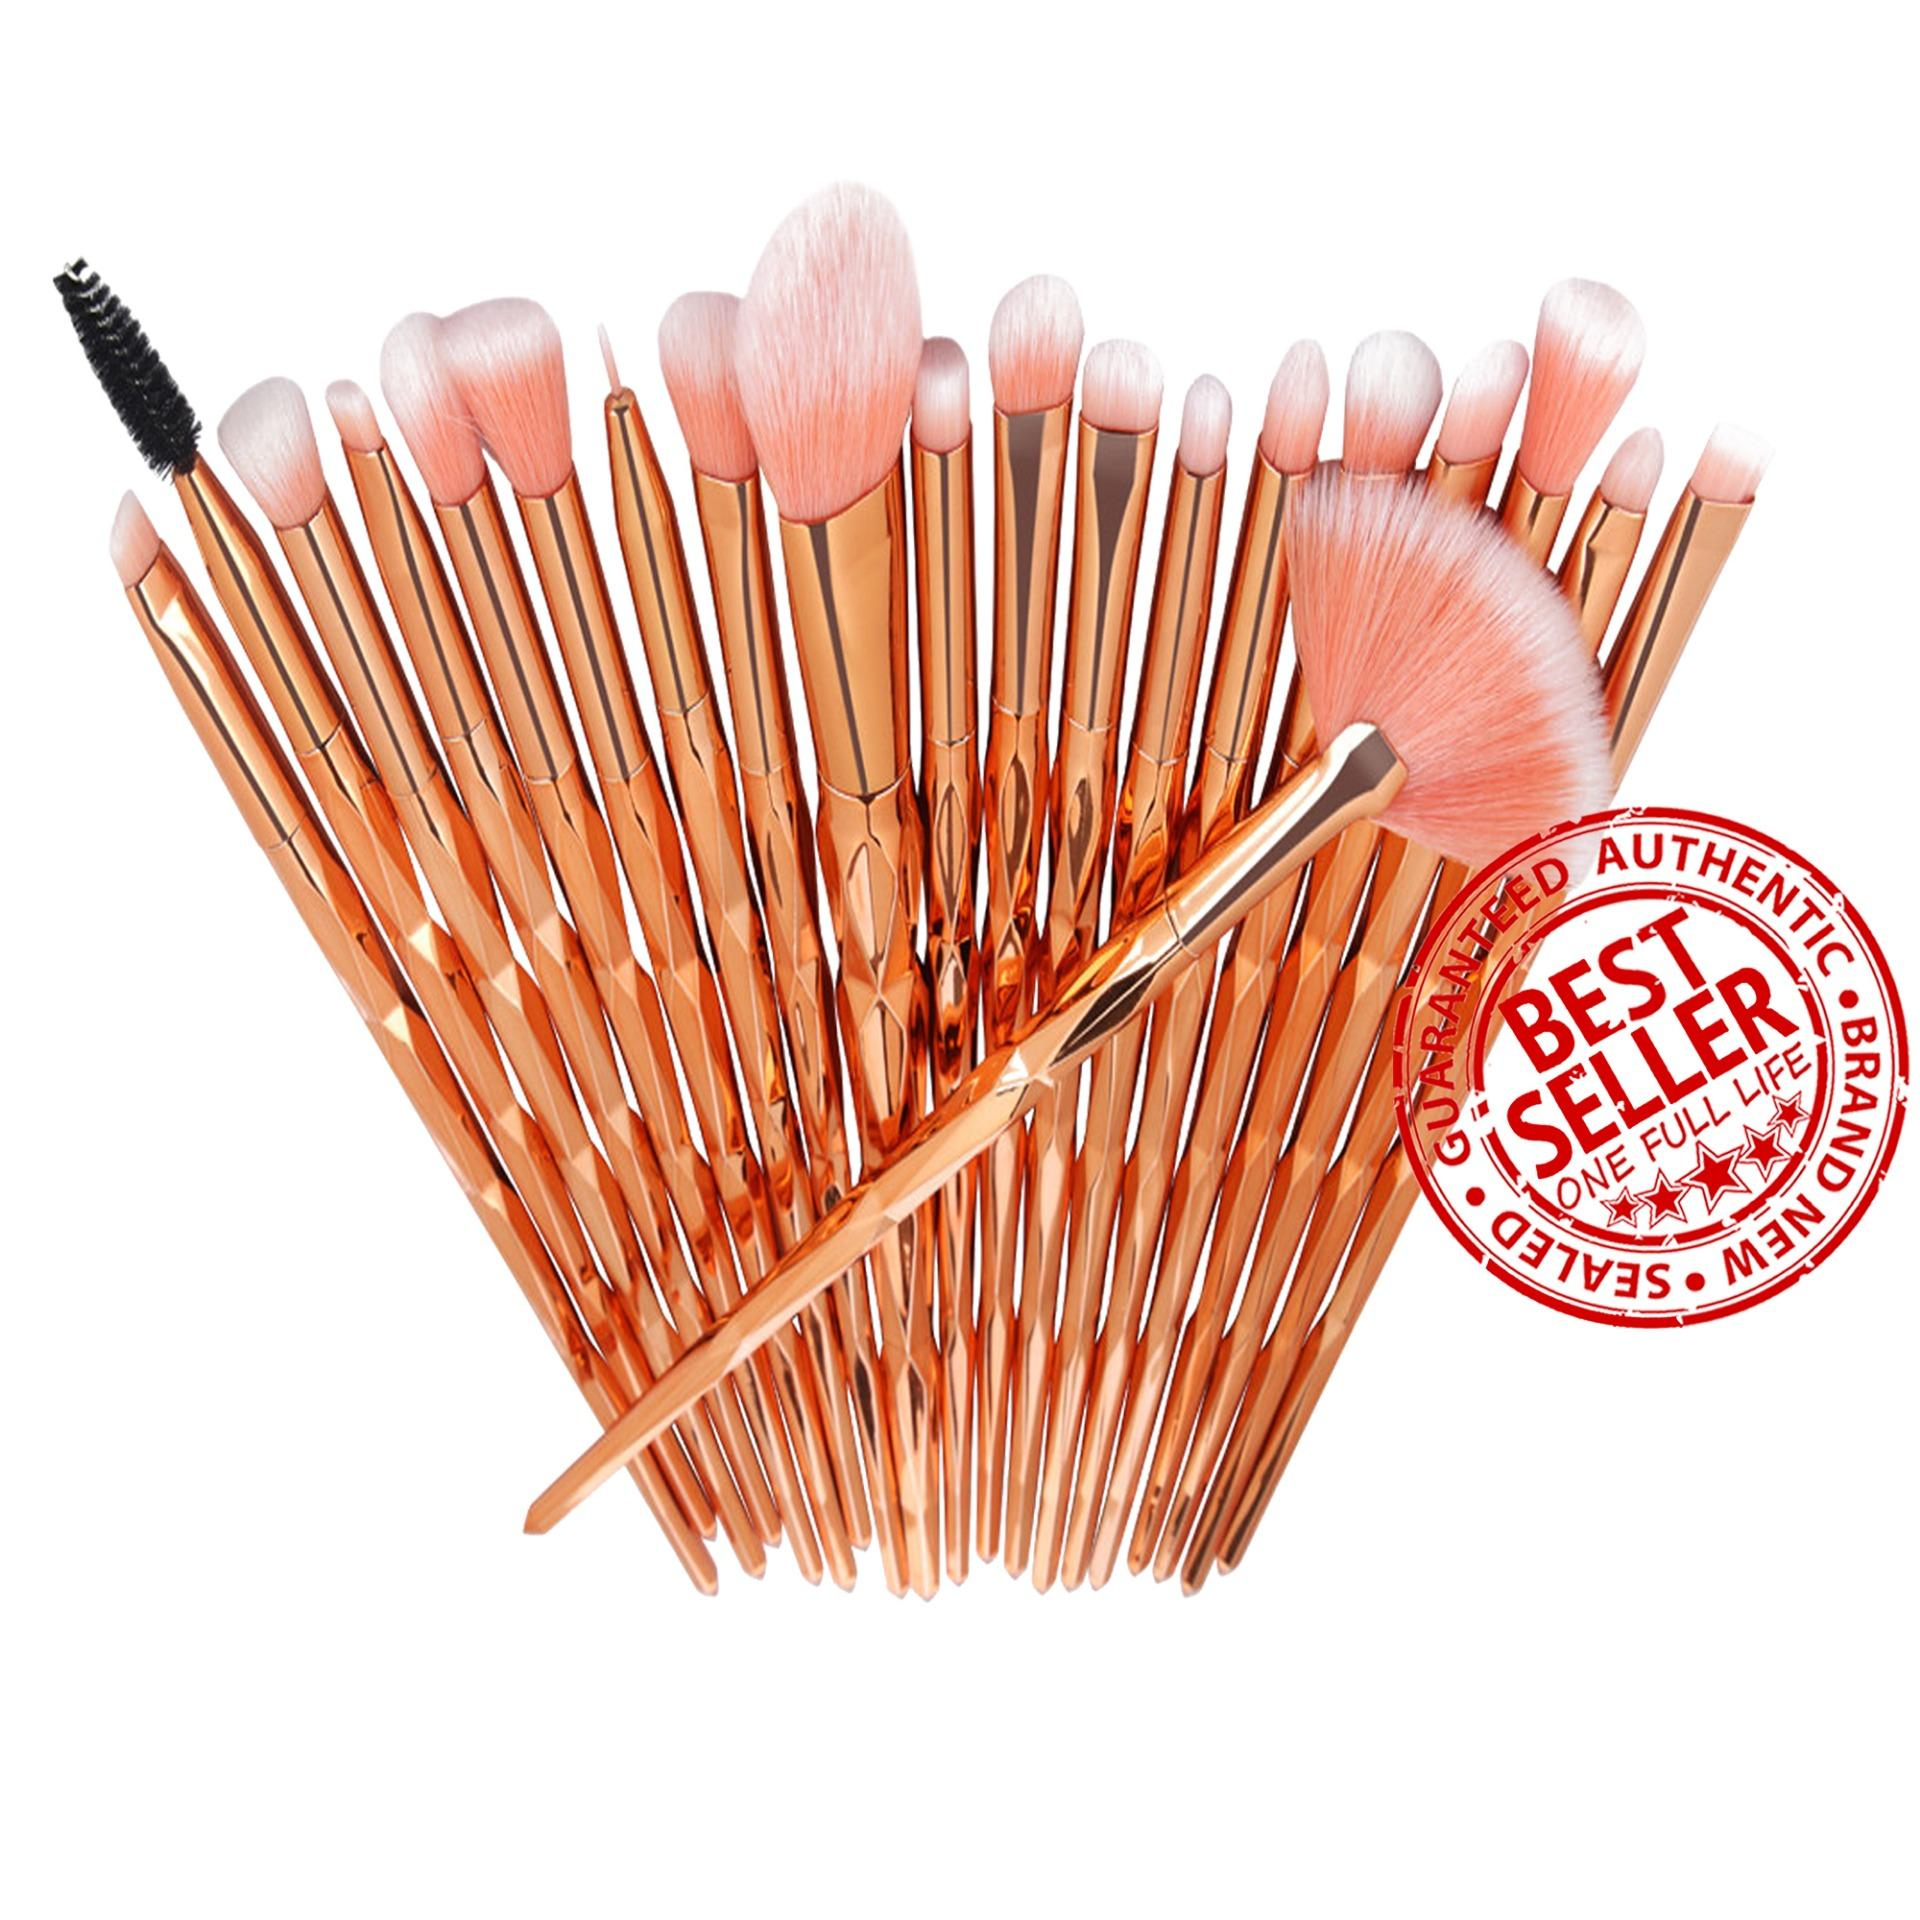 Unicorn Makeup Brush Set 20-Piece ROSE GOLD Philippines